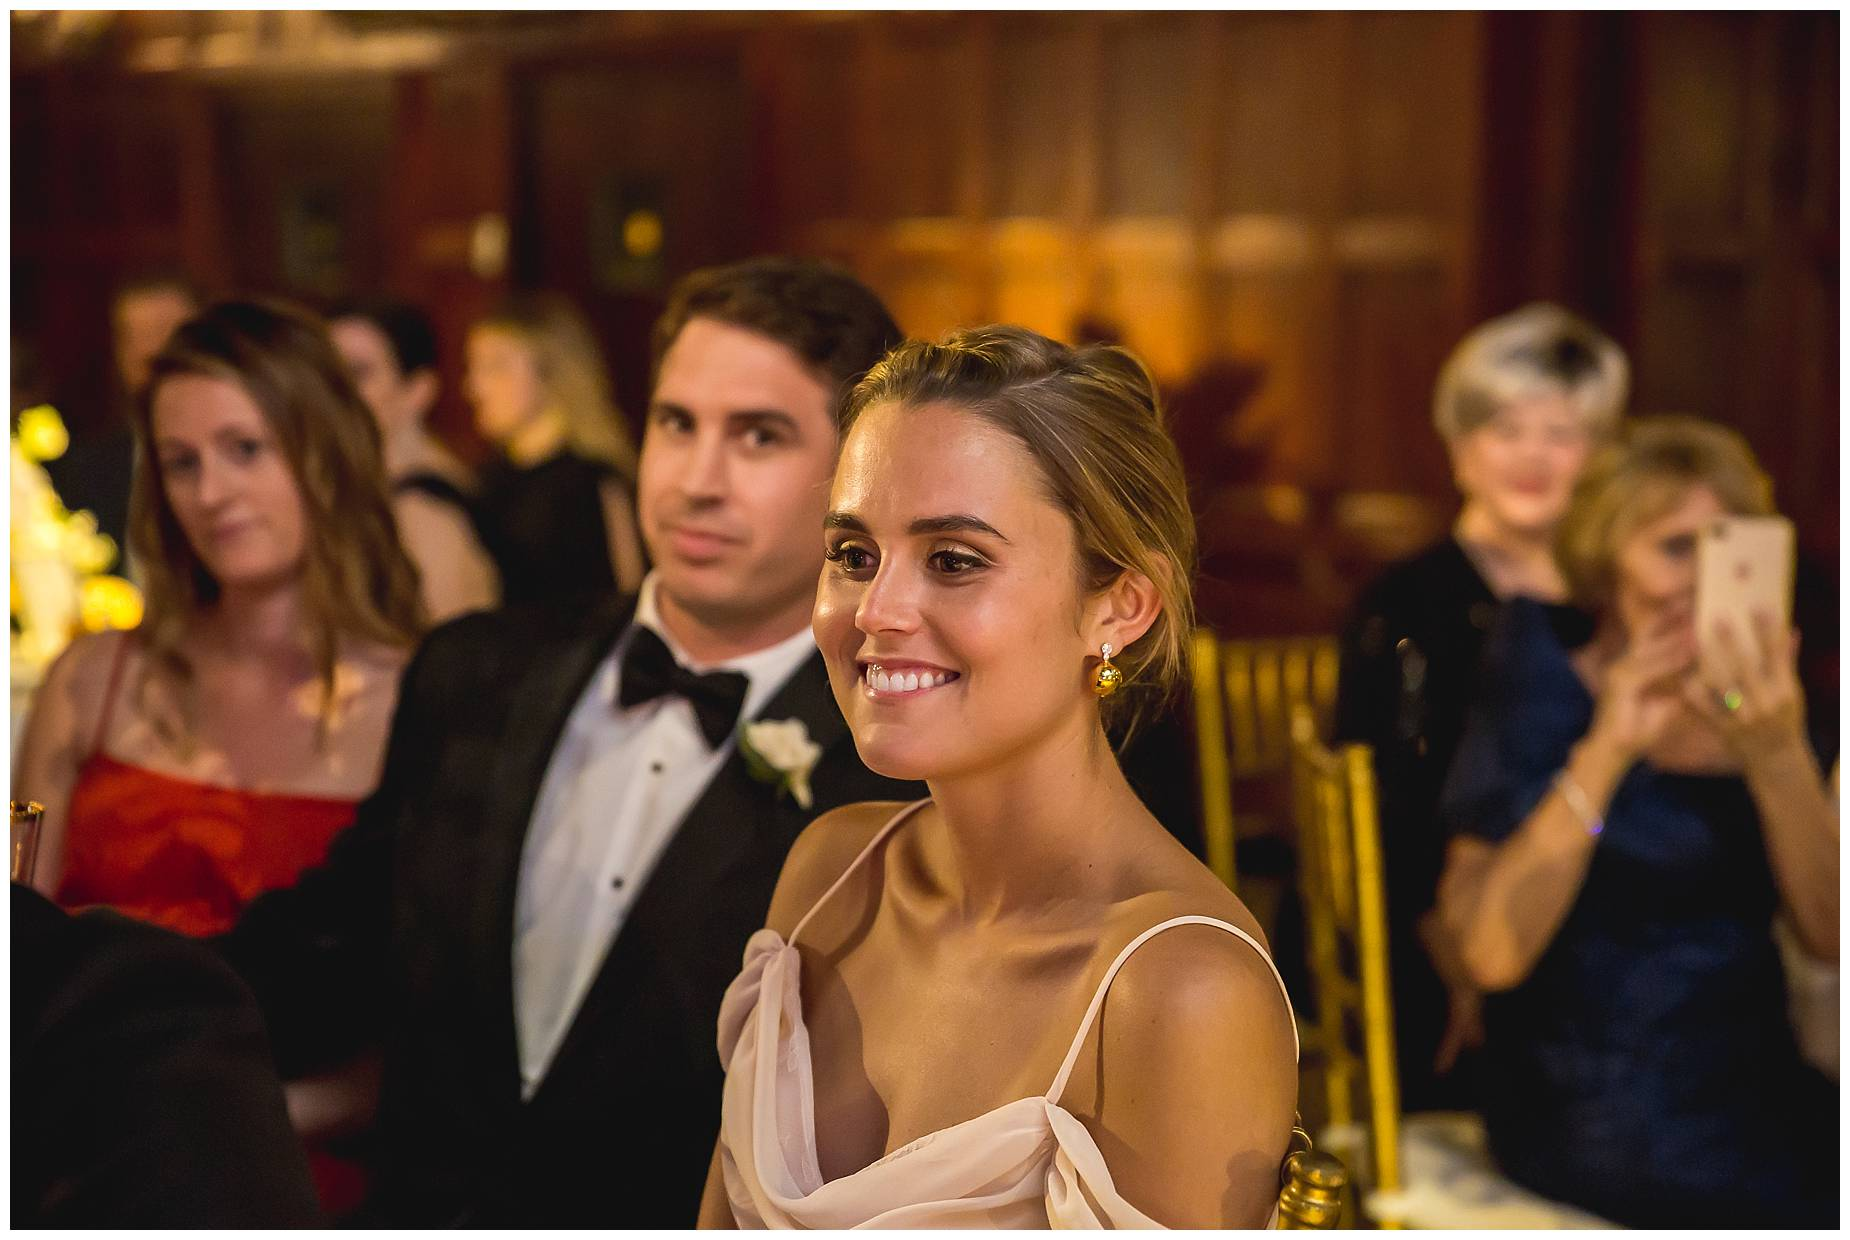 Harvard Club Wedding guests smiling